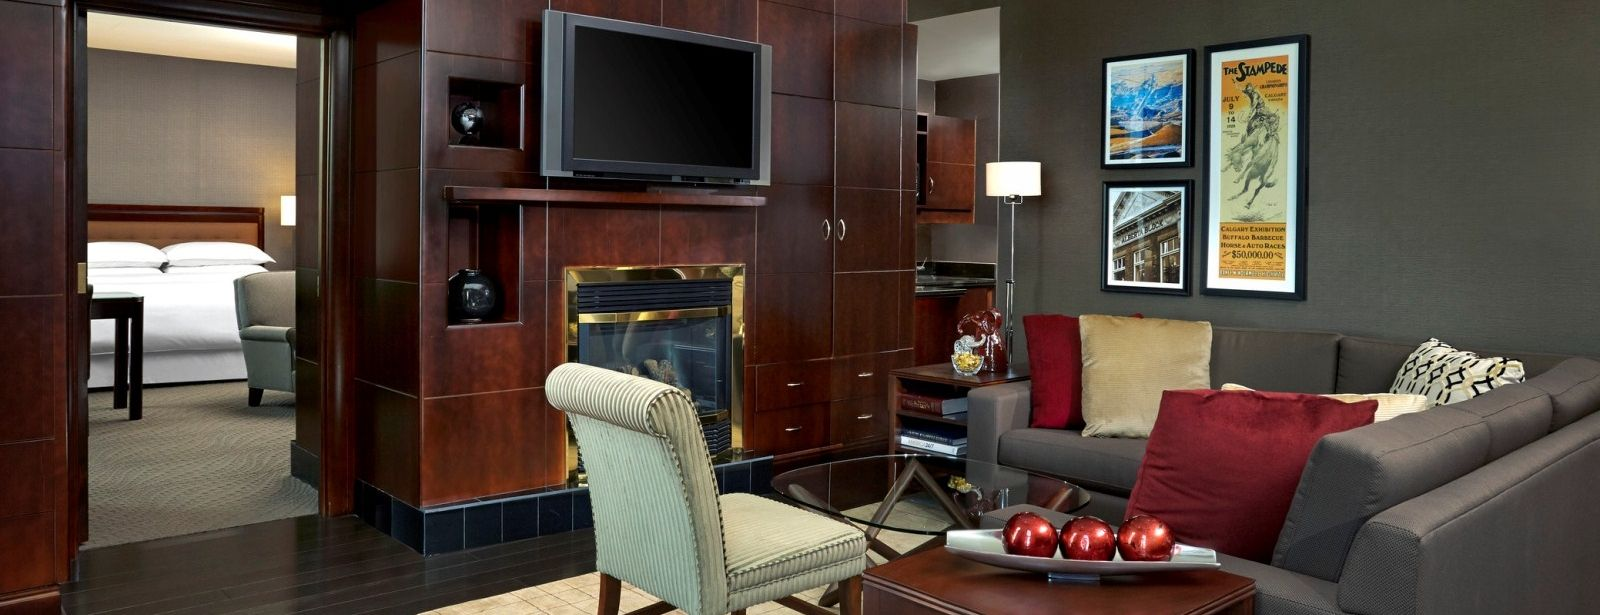 The living room at the Sharaton Presidential Suite (SheratonSuites)